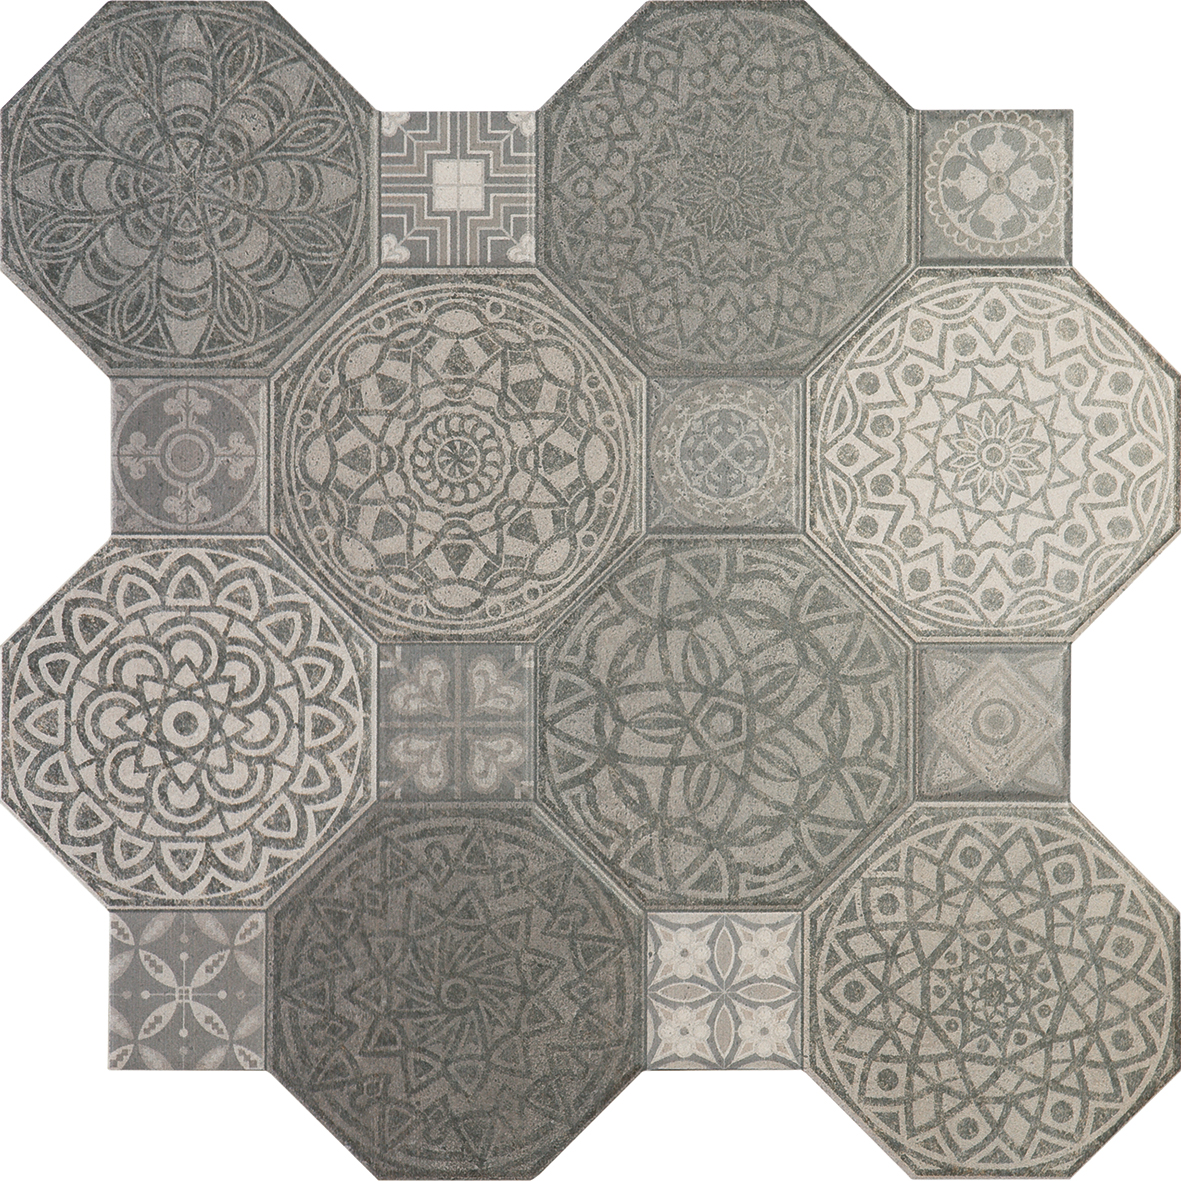 Image Decor tile